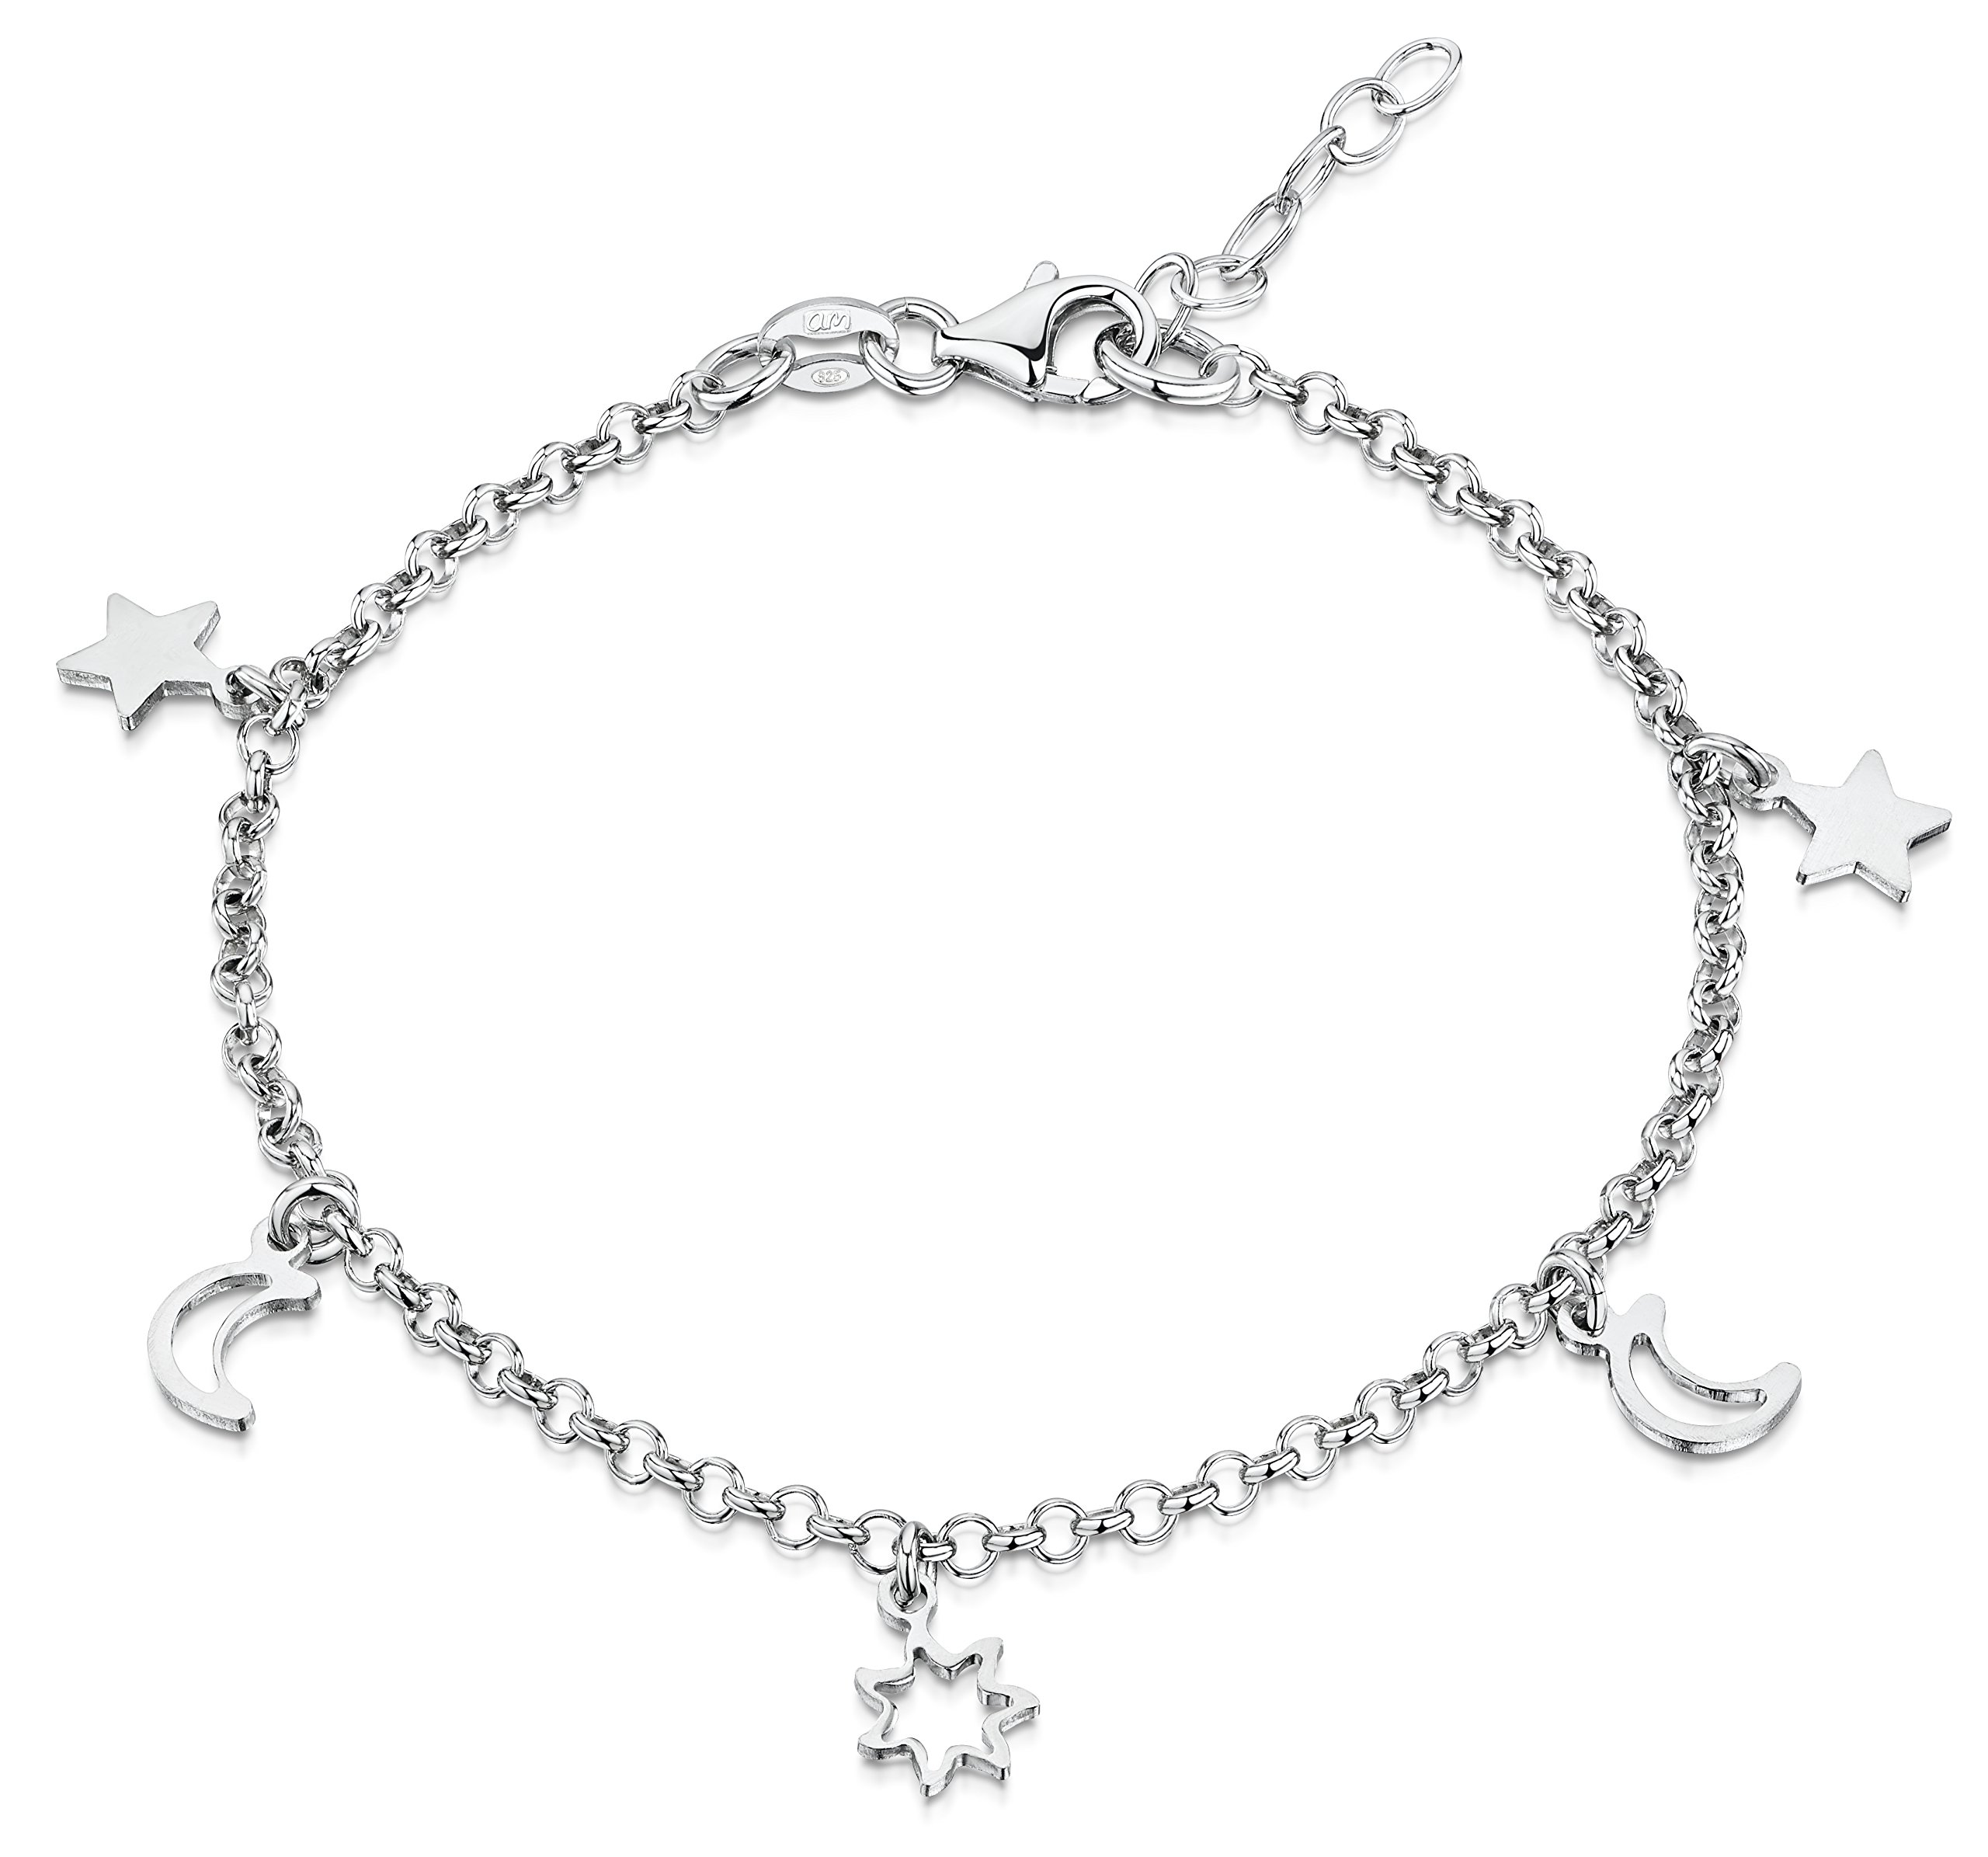 Amberta 925 Sterling Silver Adjustable Ankle Bracelet - 2.4 mm Rolo Chain Anklet with Stars and Moons - 9'' to 10'' inch - Flexible Fit